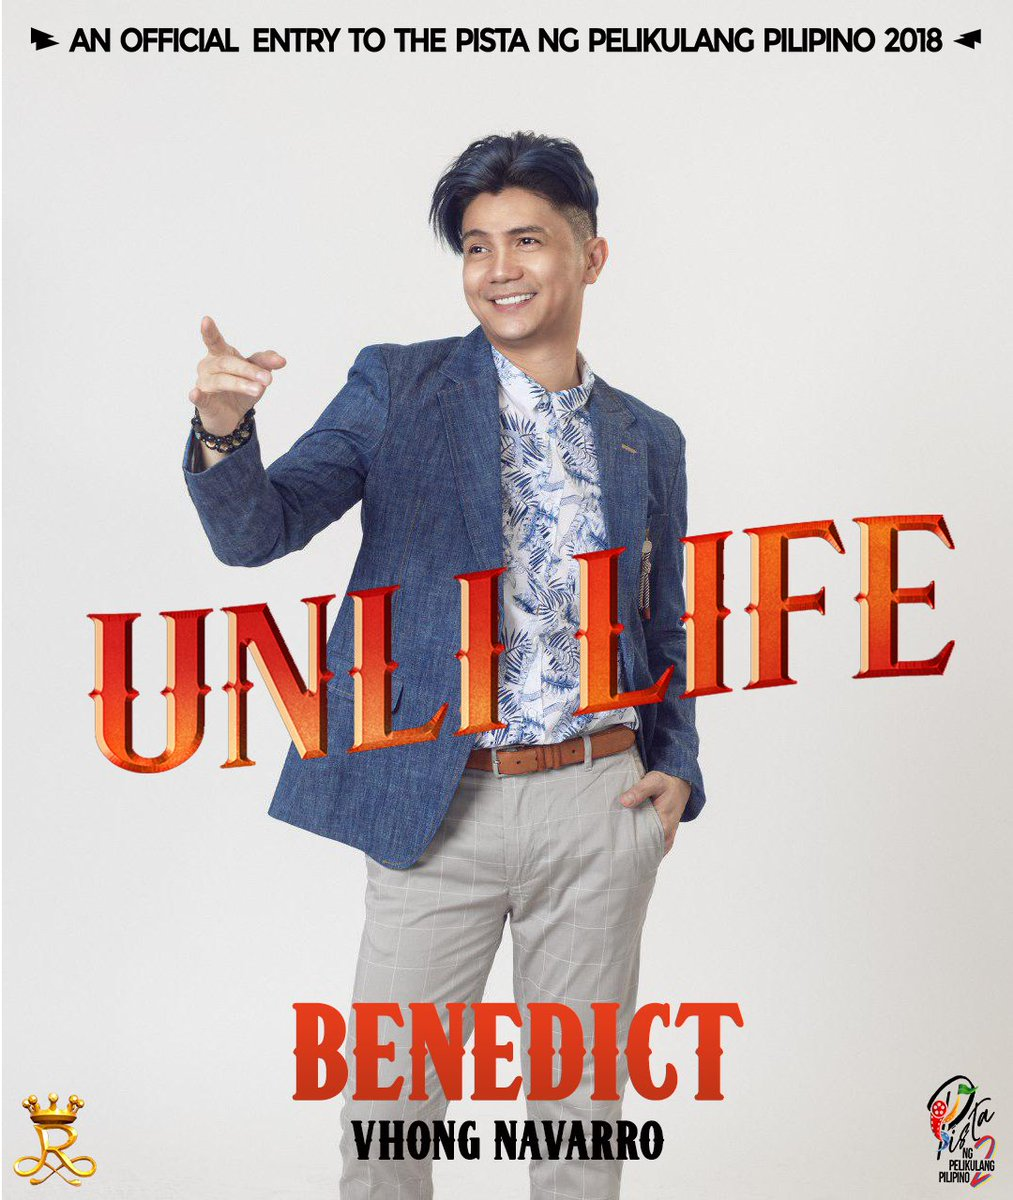 Regal Films Auf Twitter Vhong Navarro In Unli Life As Benedict An